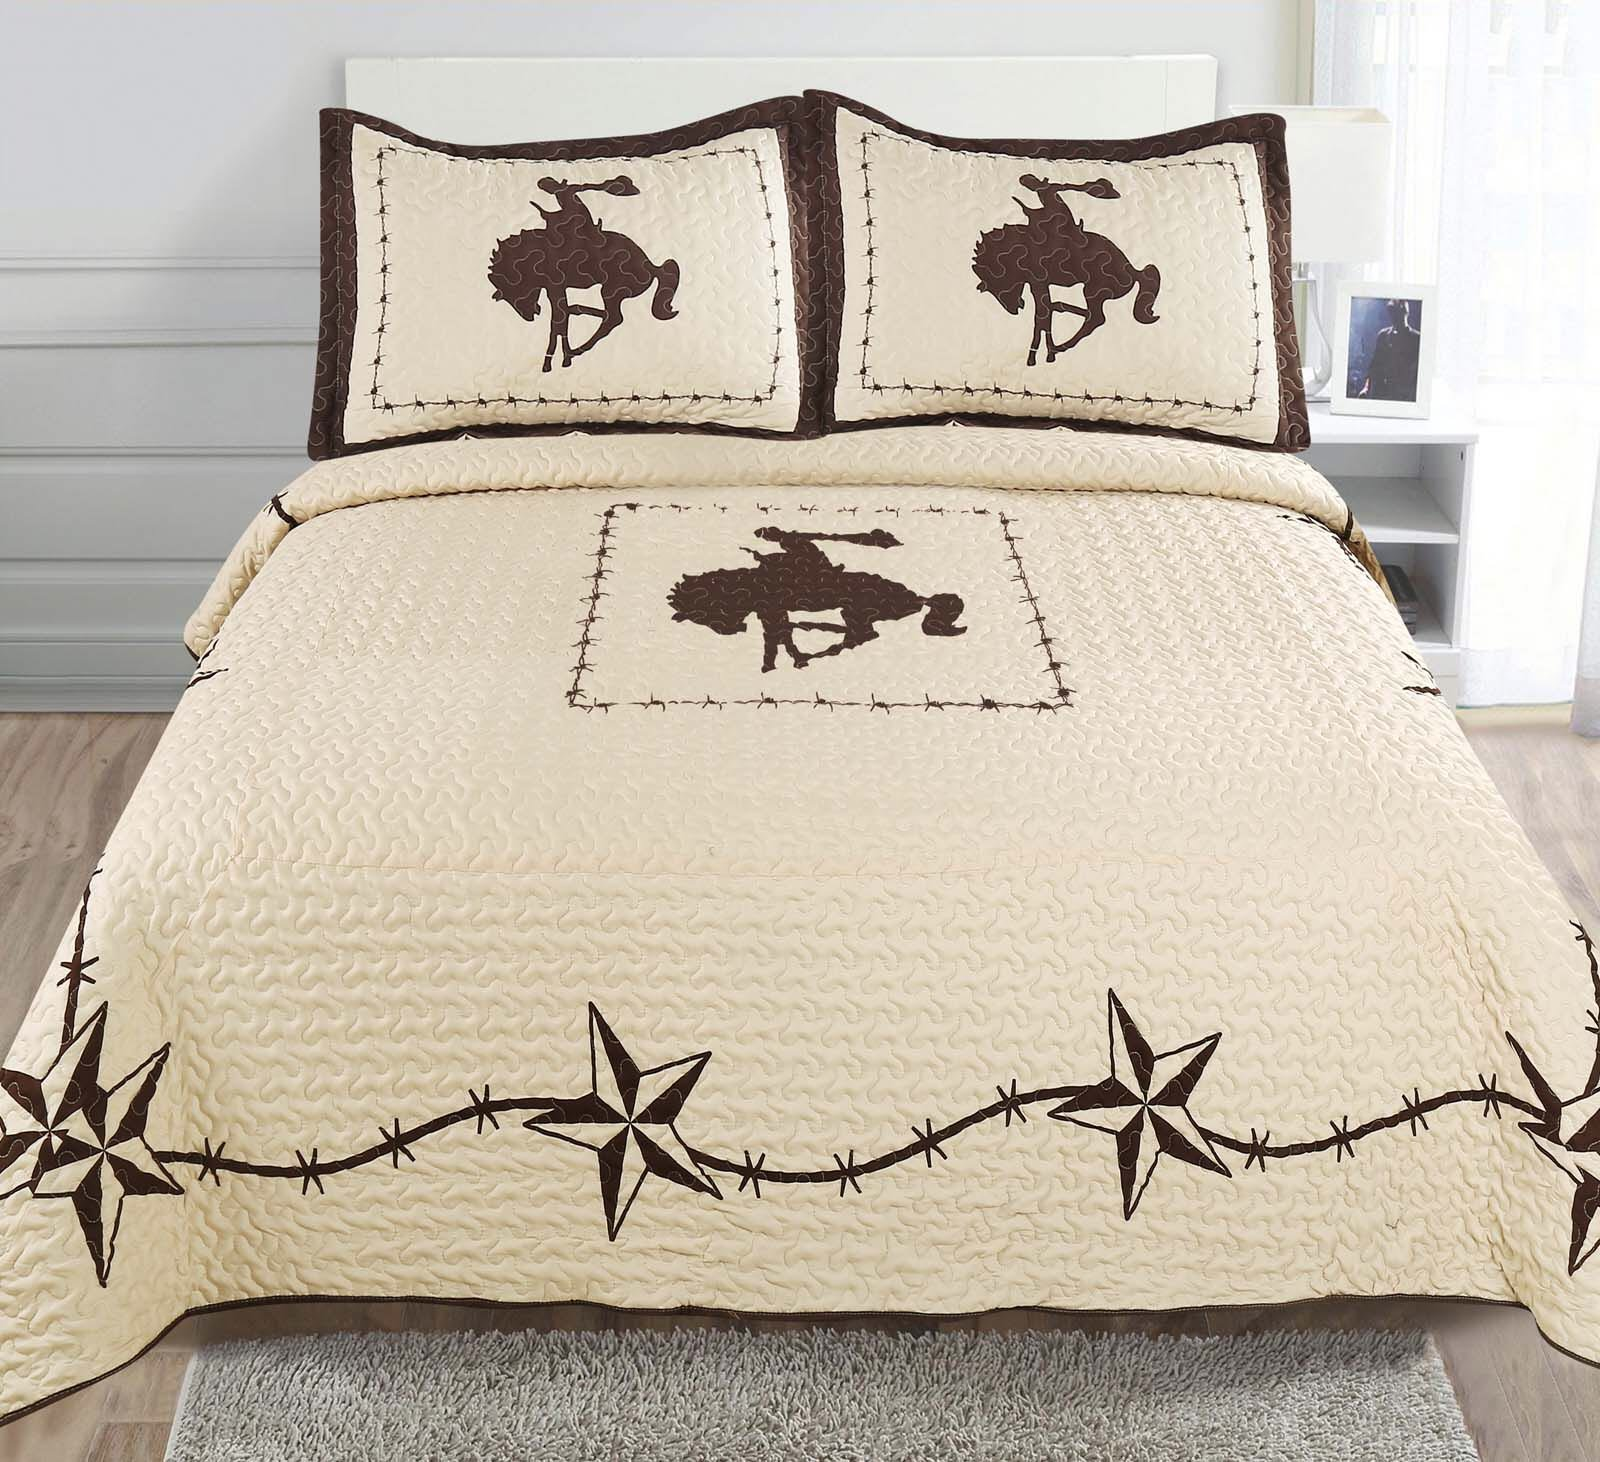 3-piece Printed Western Lone Star Barb Wire Cabin / Lodge Cowboy Horse Quilt Bedspread Coverlet Set (Full/ Queen, Rodeo -Beige)